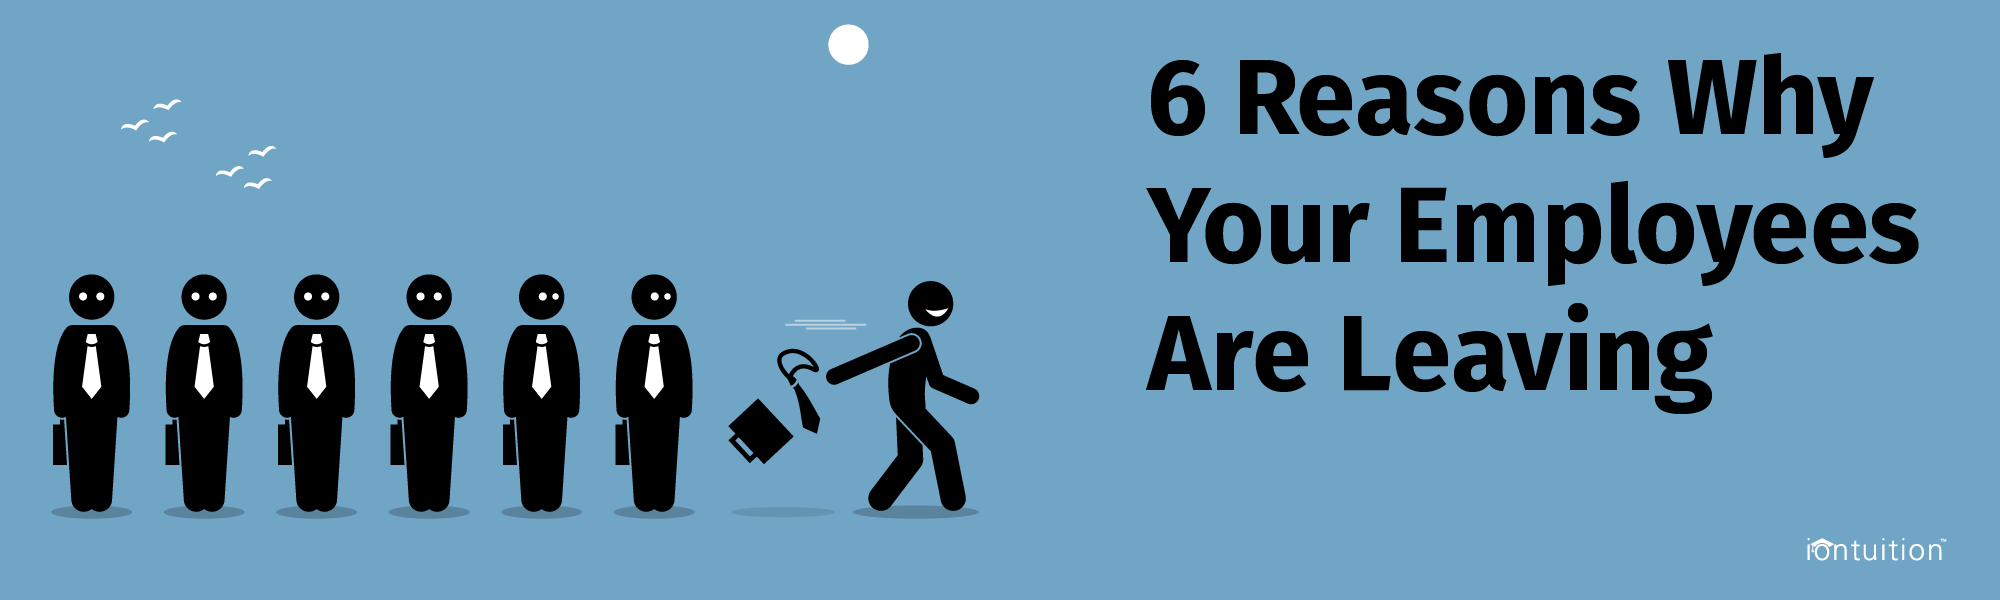 Losing Top Talent? The Reasons Why This Might Happen To You